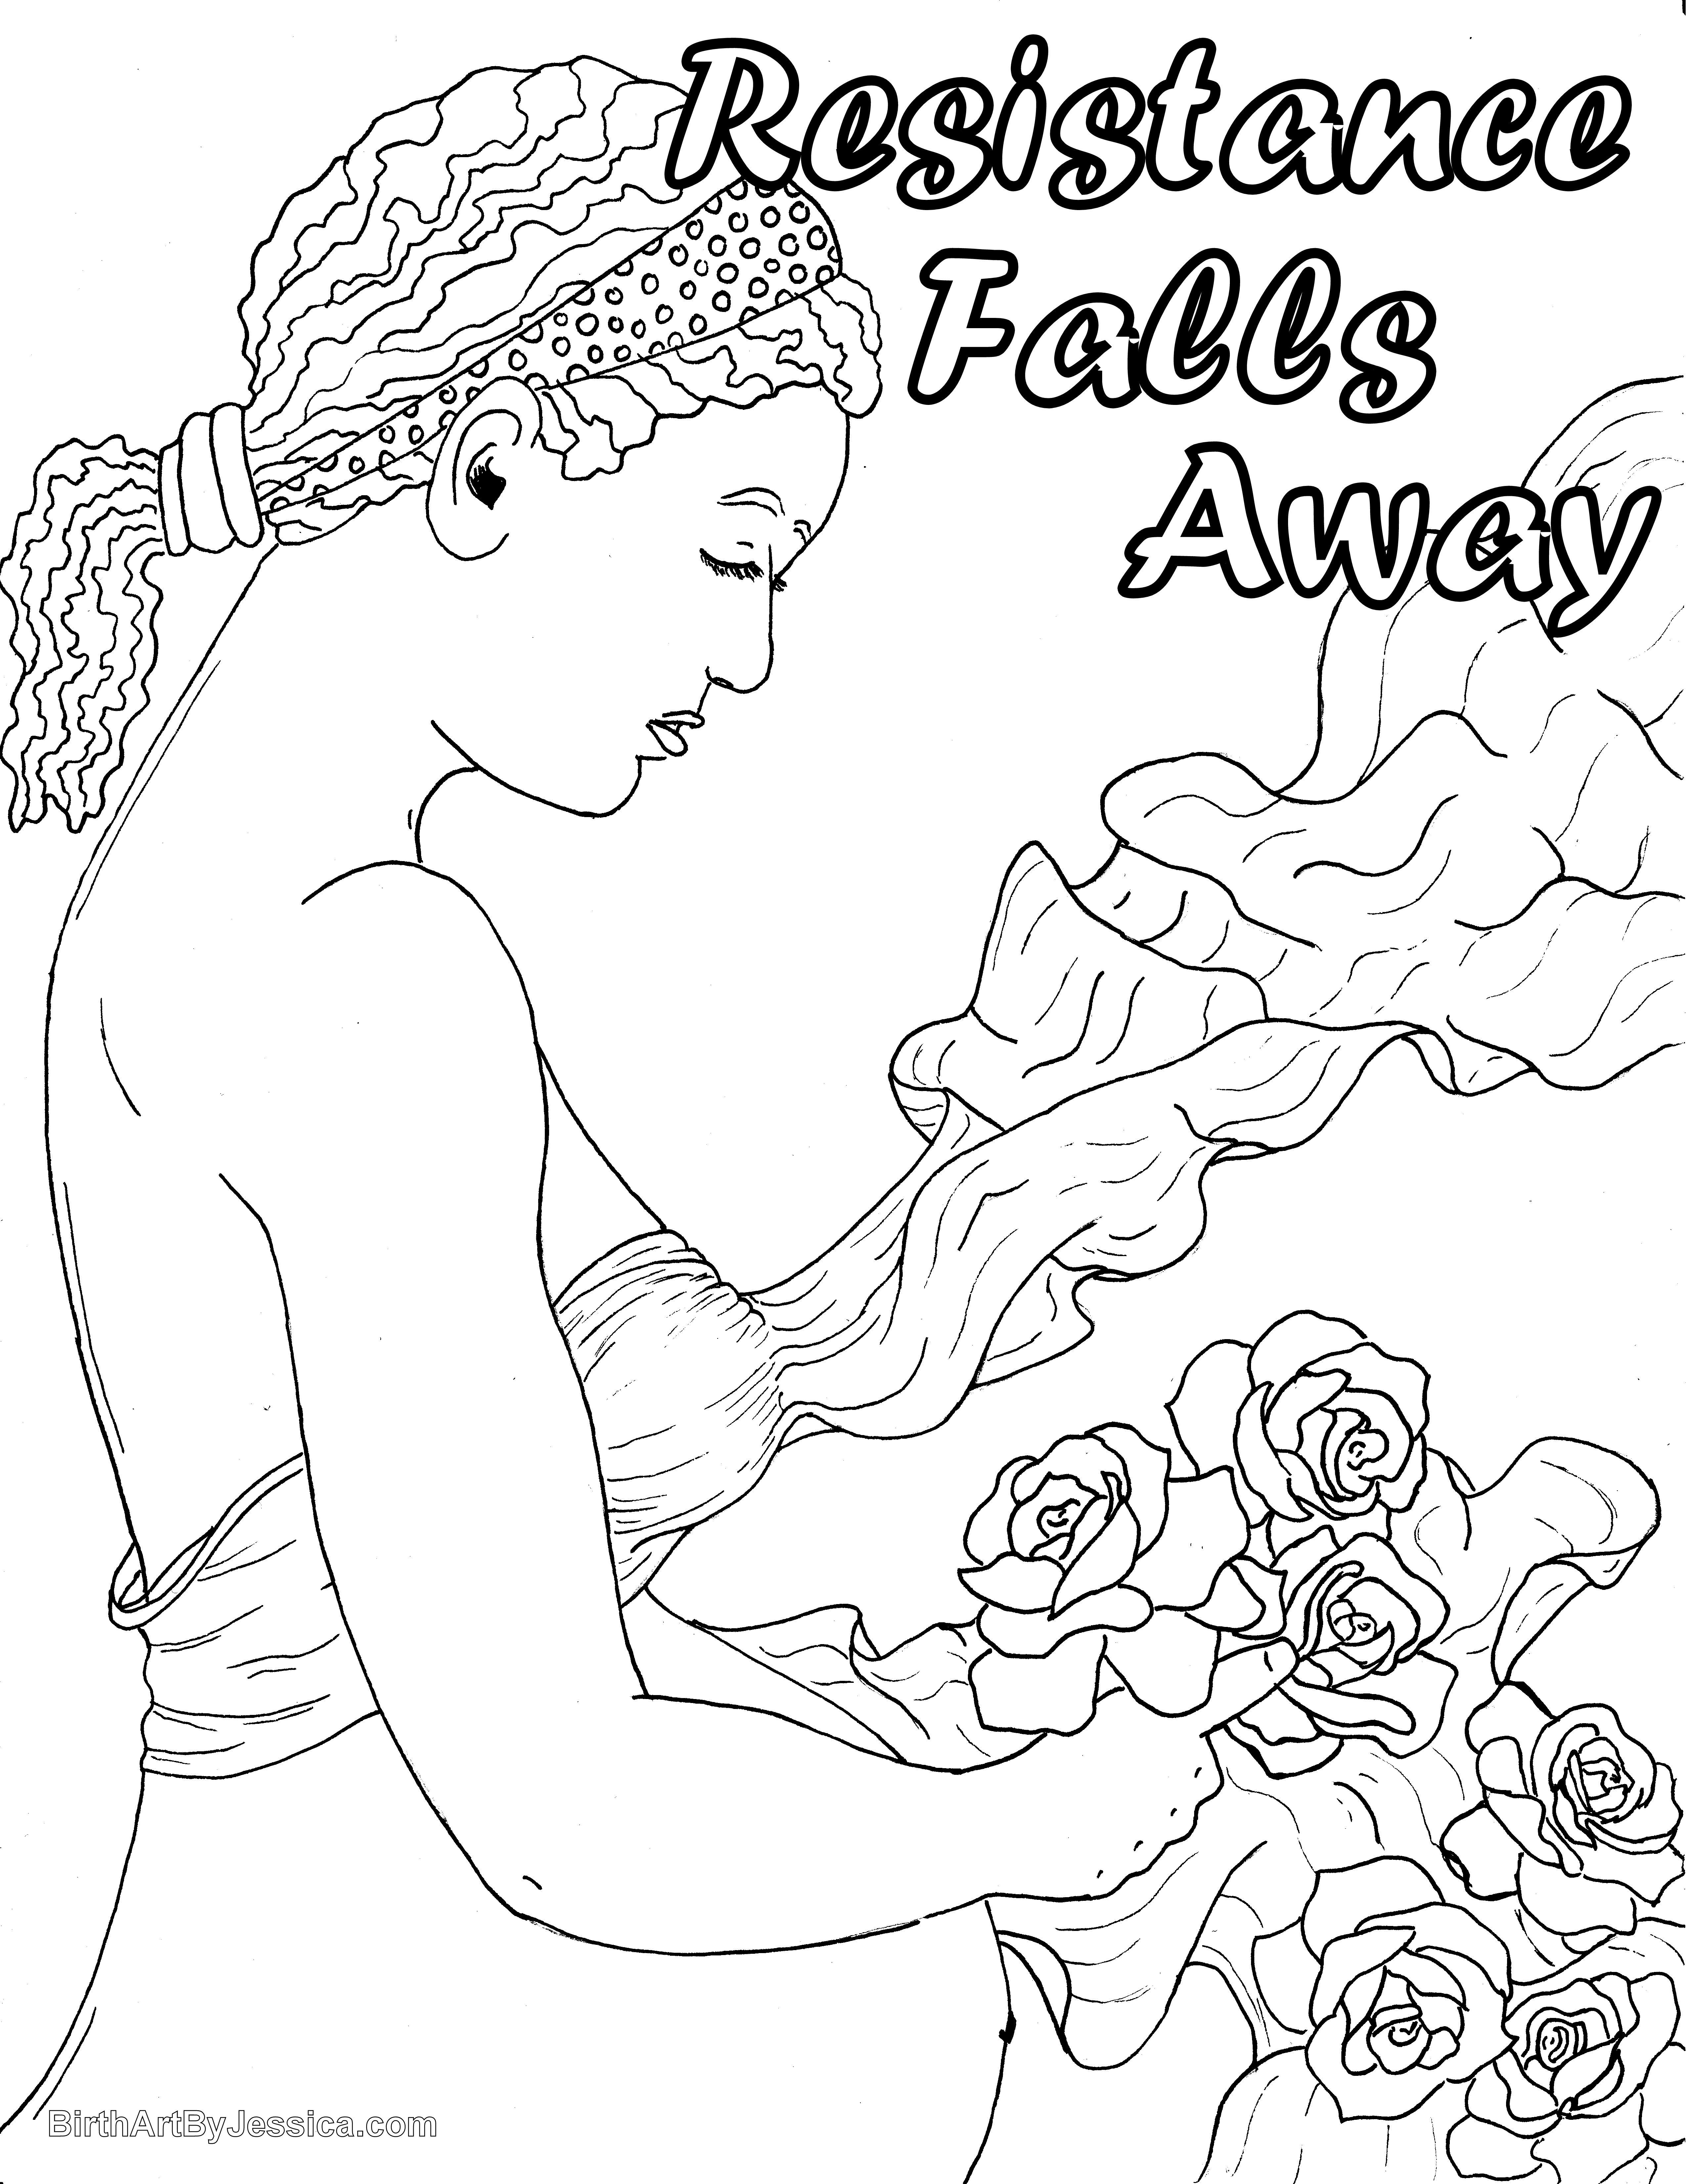 Birth Affirmation Coloring Page -Free Printable!- resistance falls ...